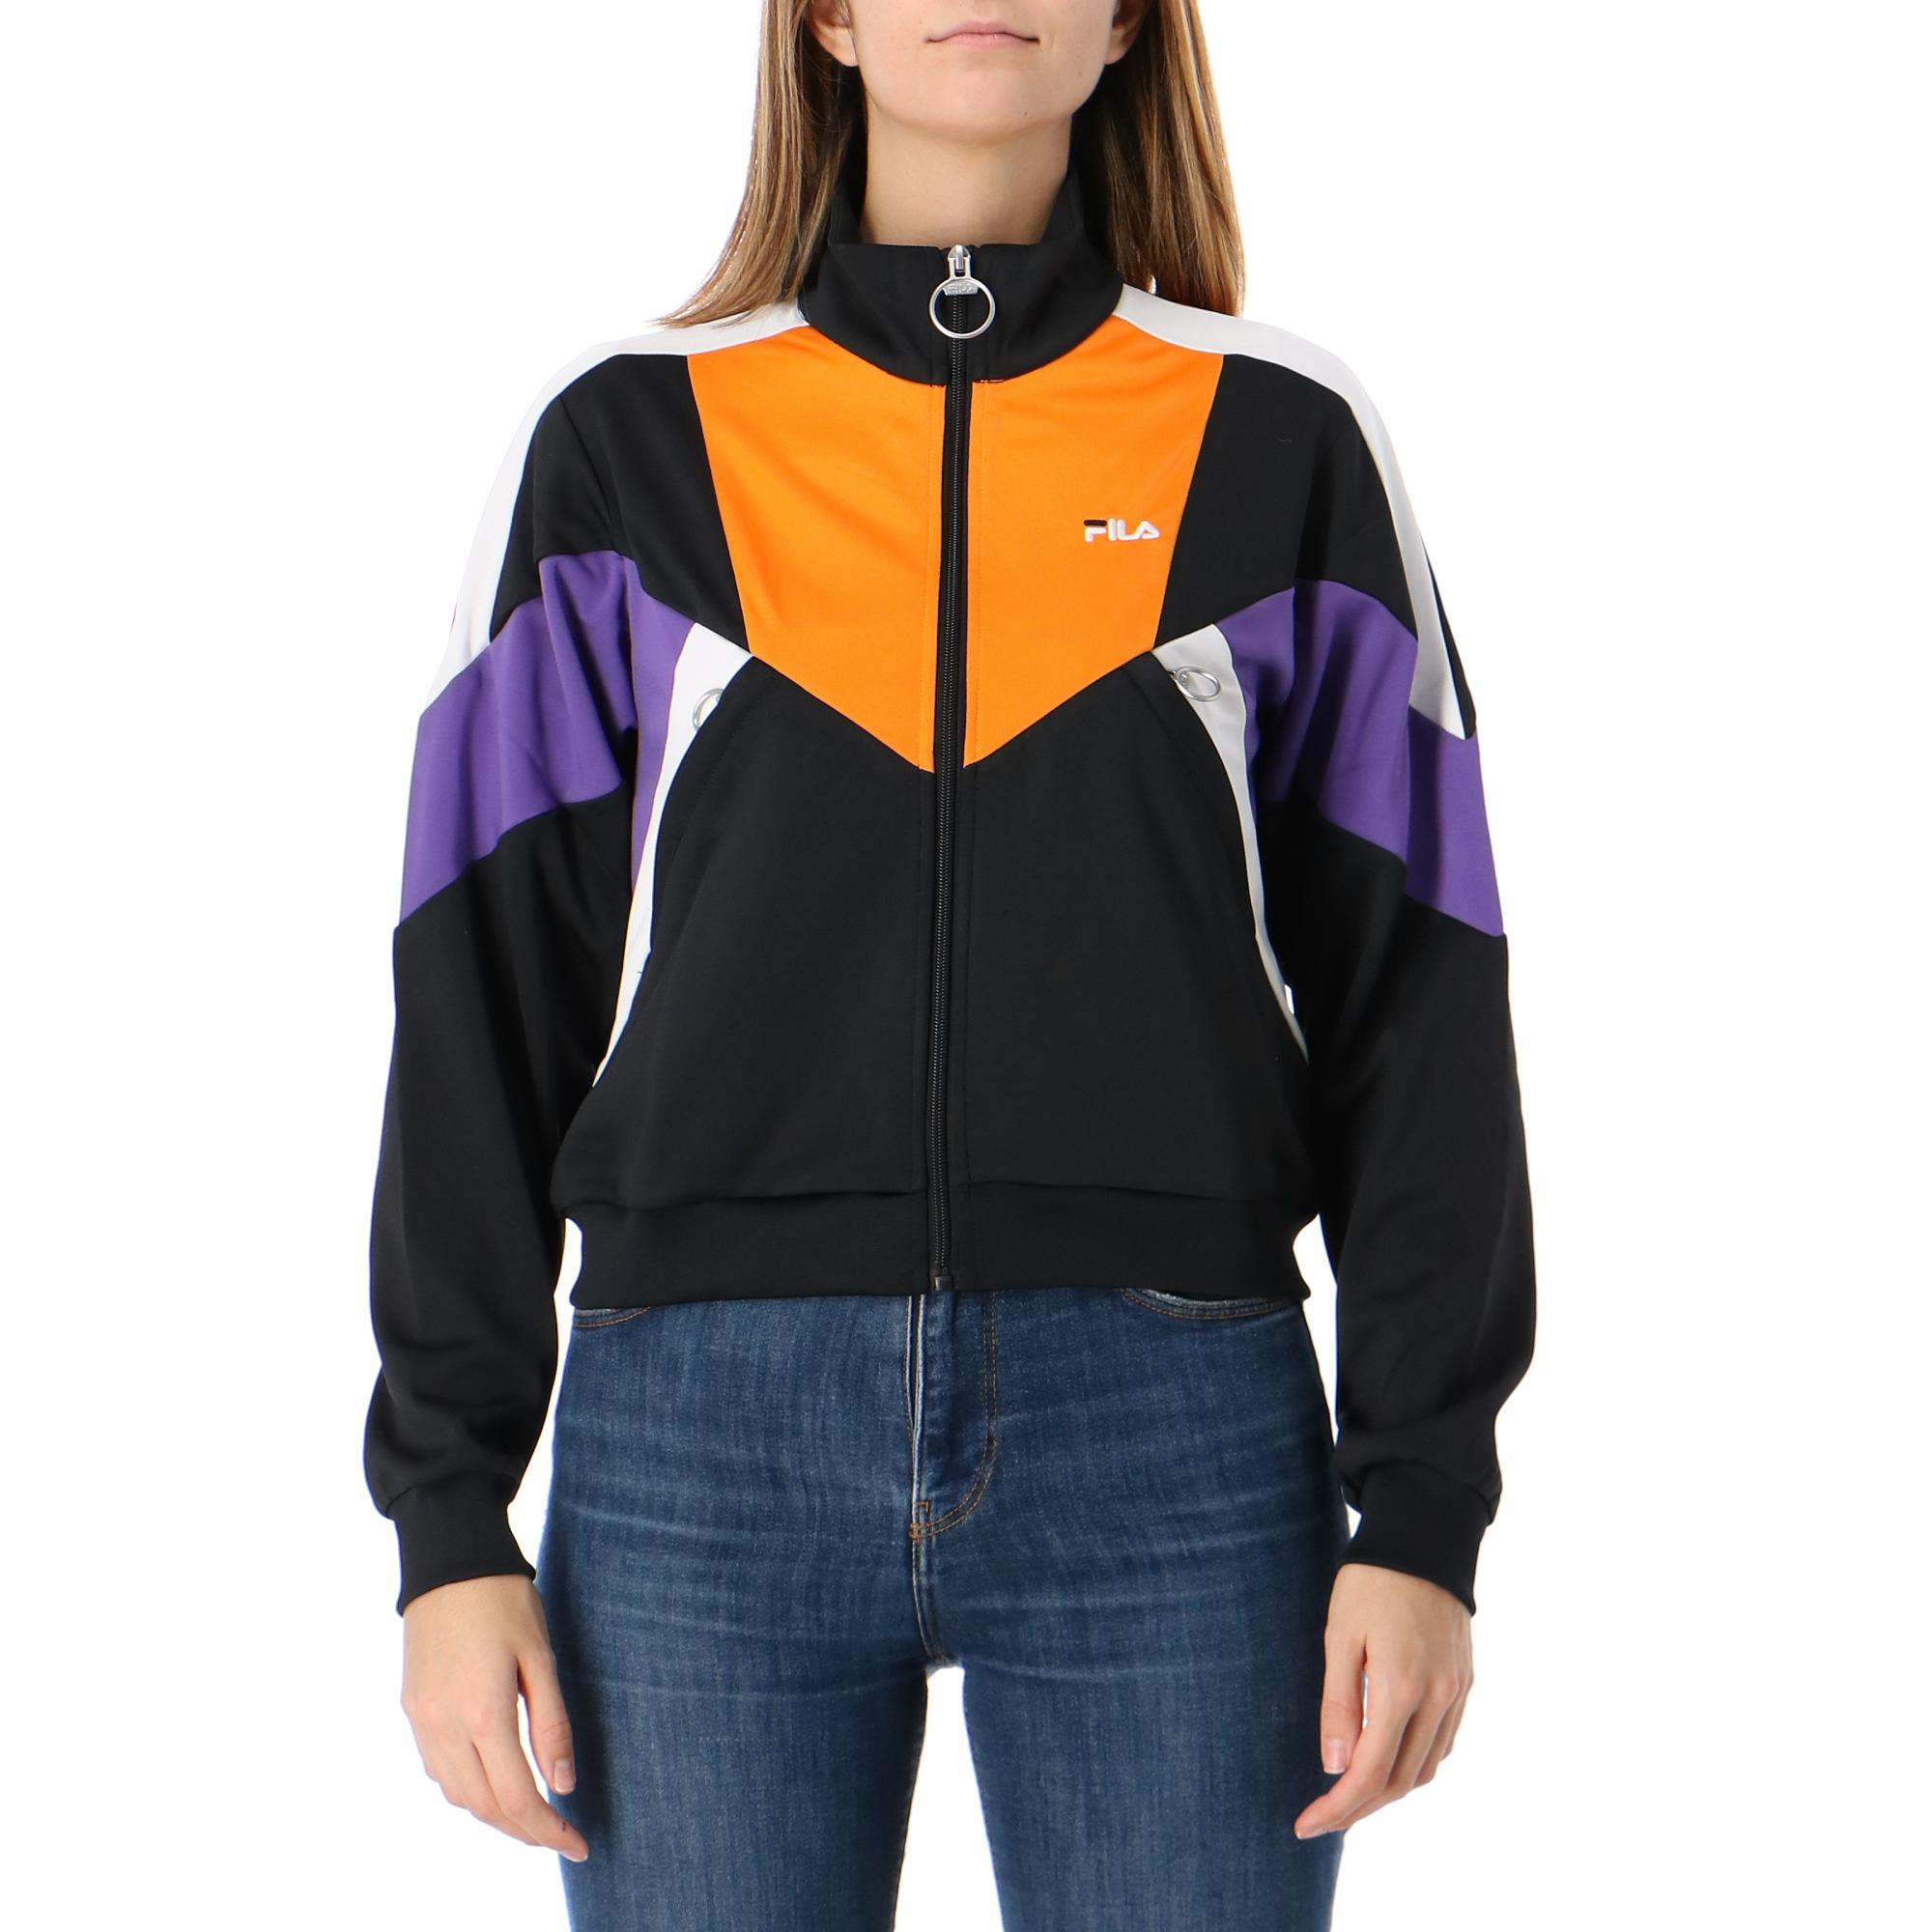 Fila Becca Cropped Track Jacket Black ultra violet orange pops